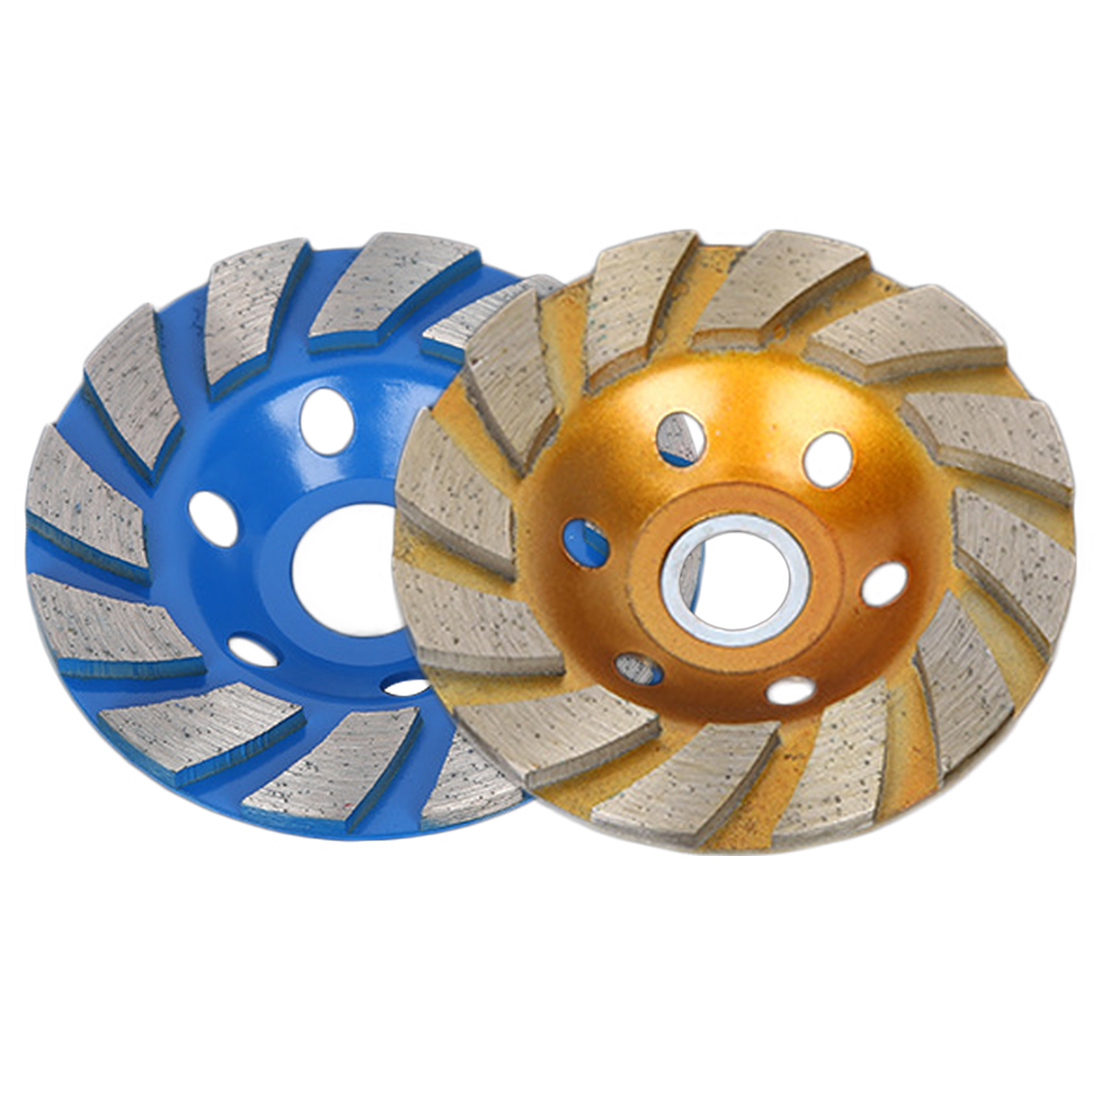 Coarse 18 segmented for Fast Grinding 5in Diamond cup wheel 5//8-11T